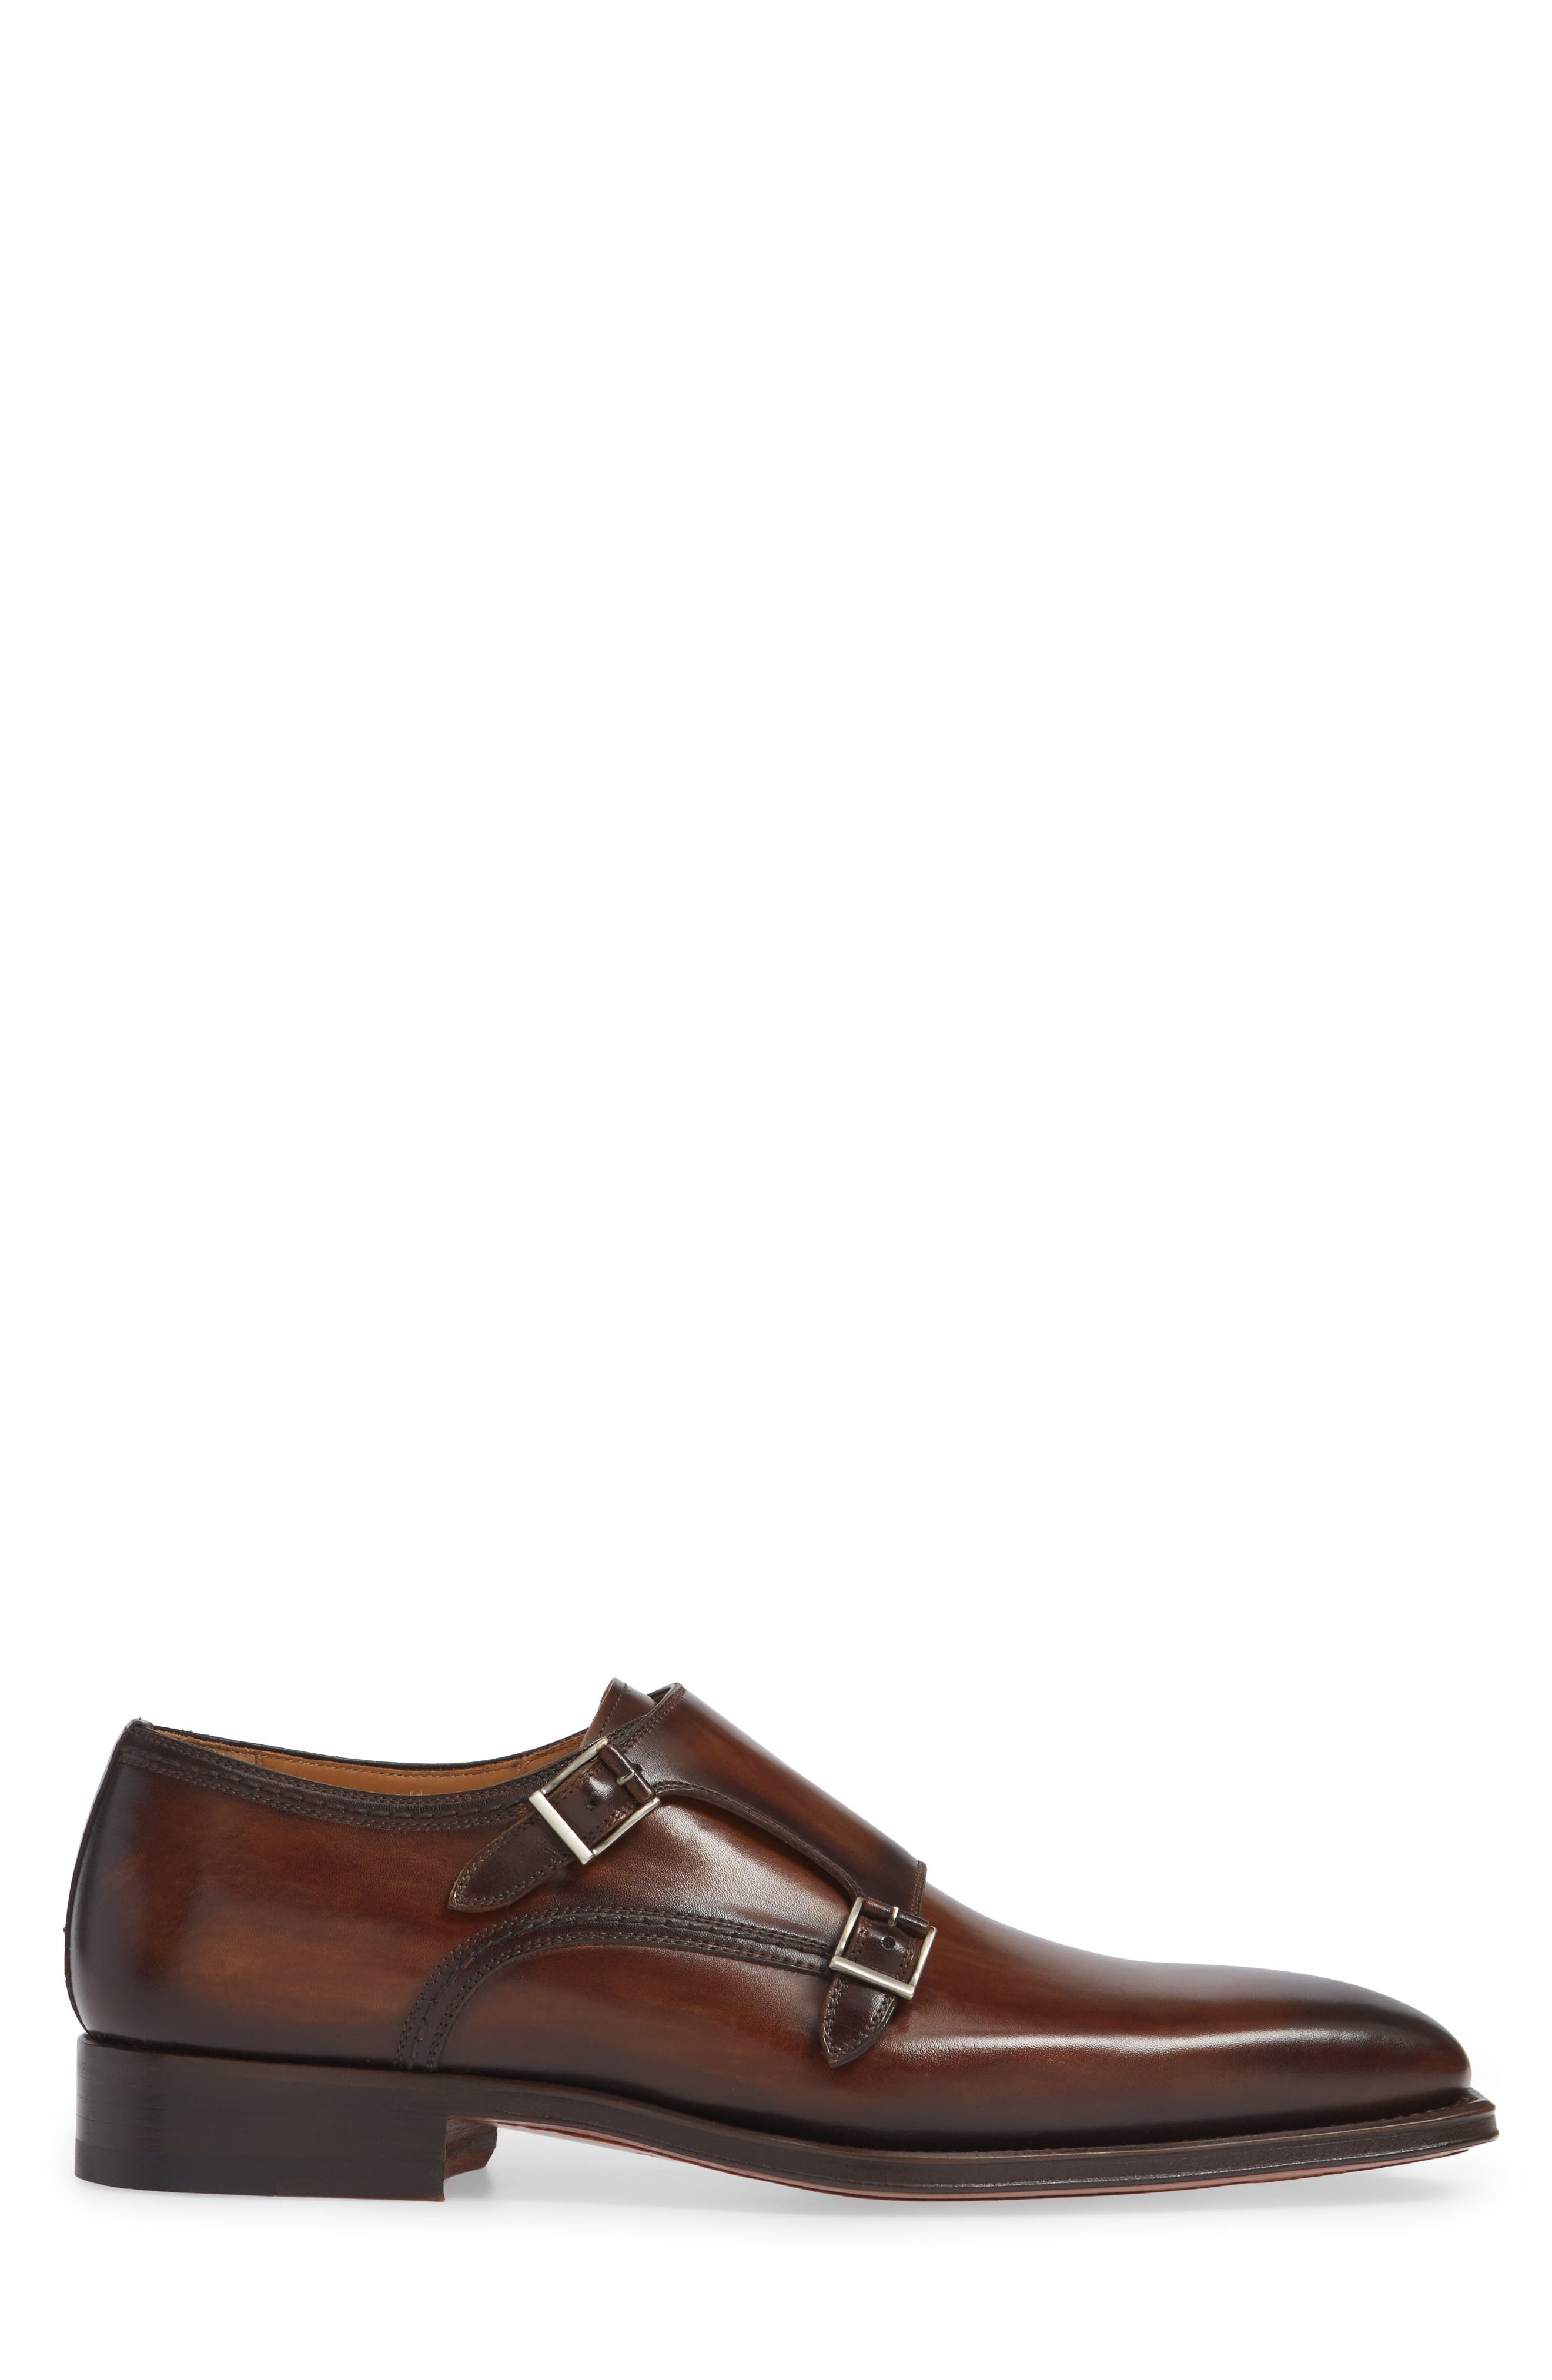 Landon Double Strap Monk Shoe,                             Alternate thumbnail 3, color,                             TOBACCO LEATHER